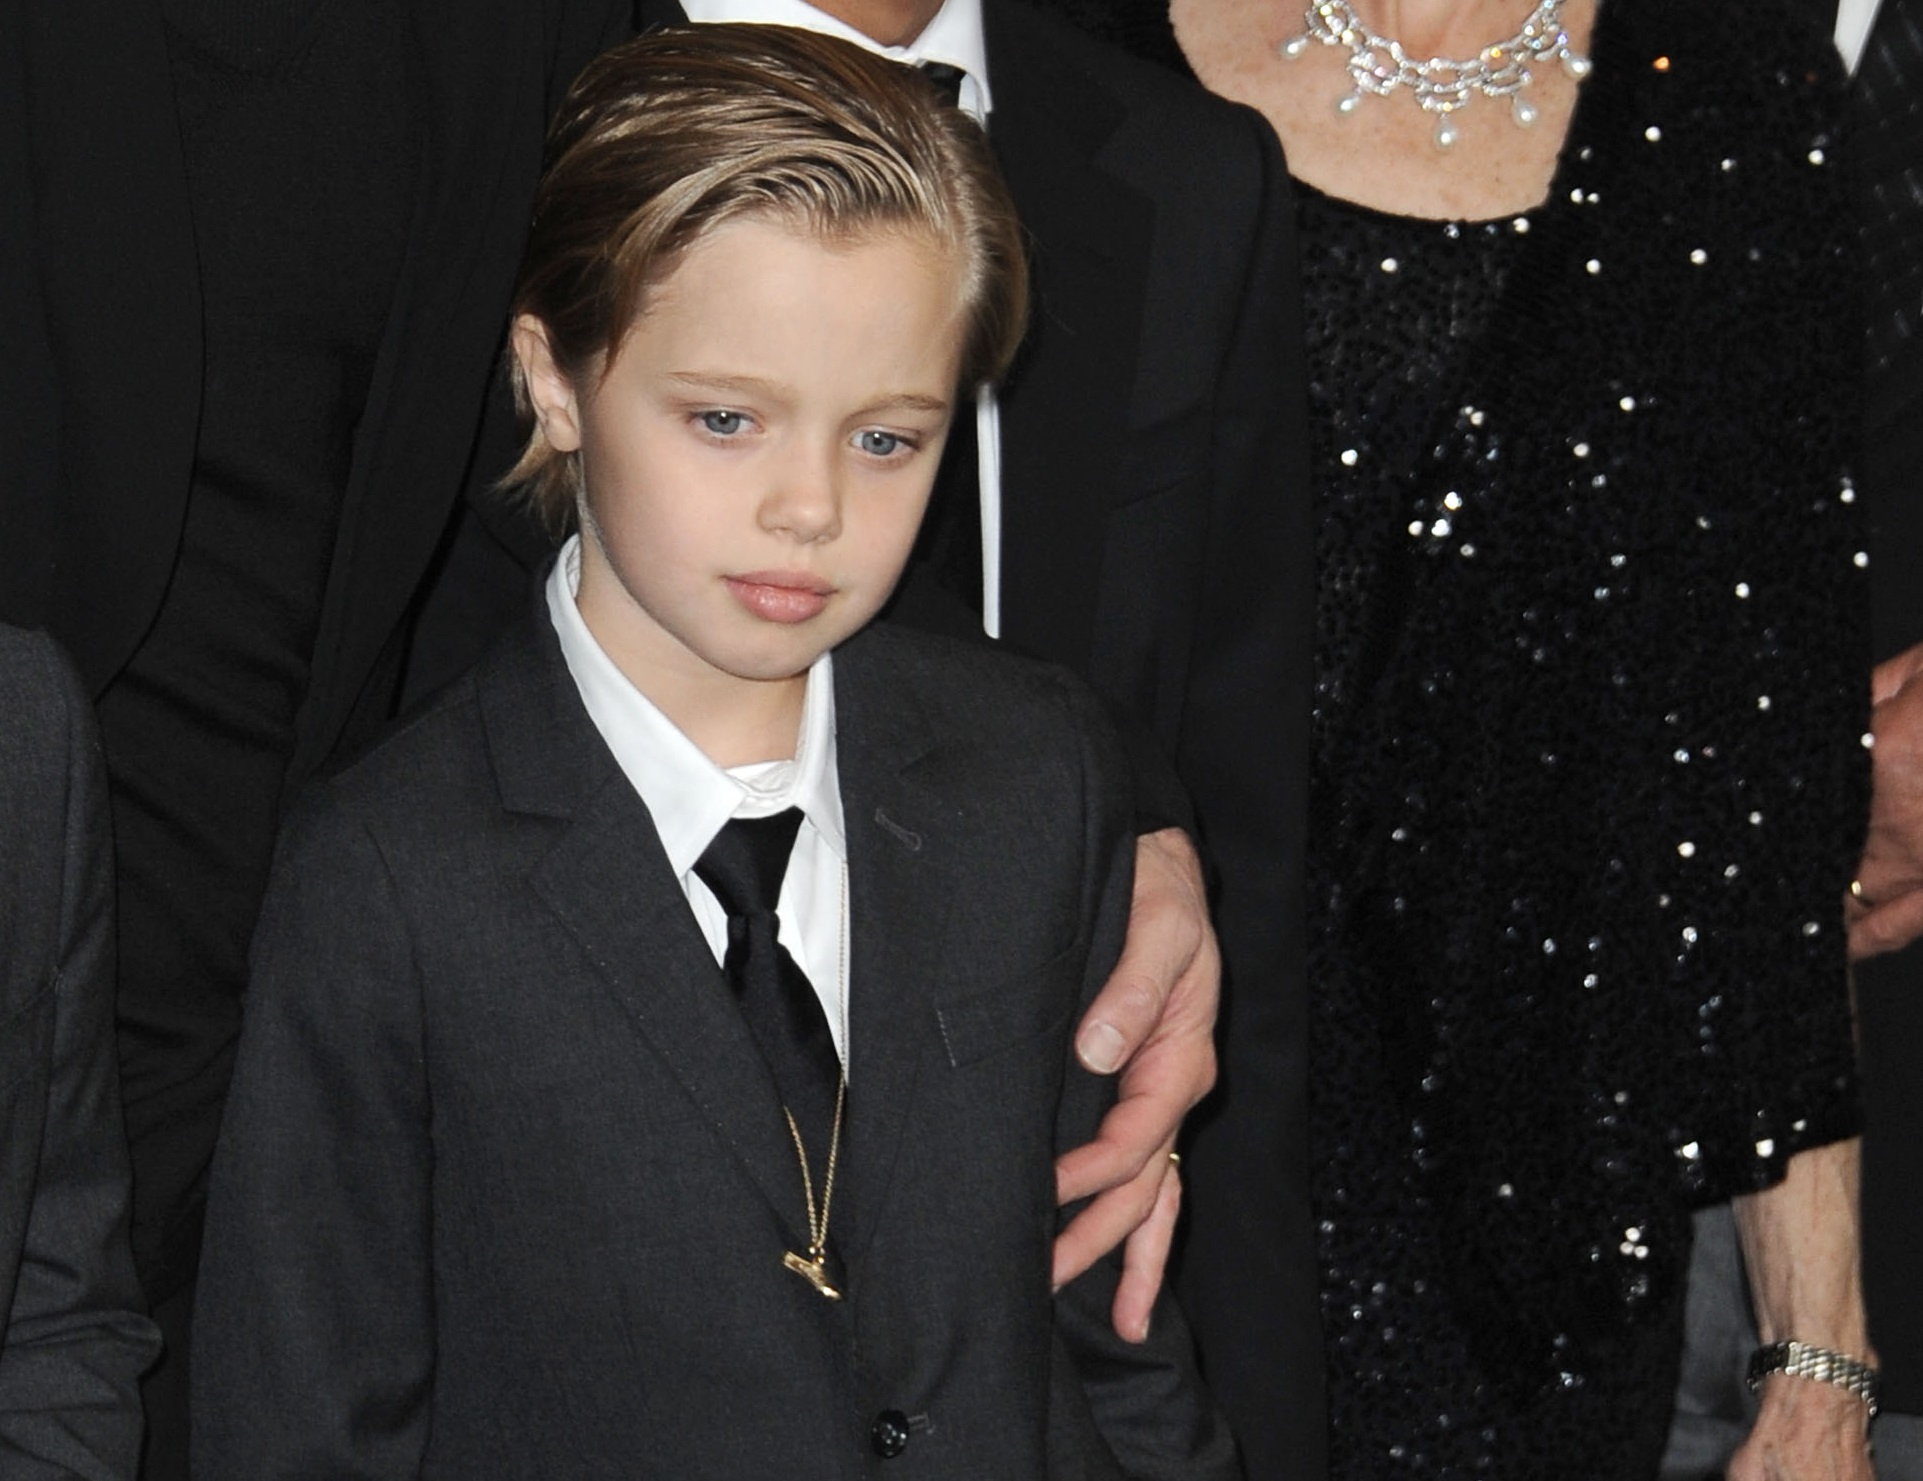 Dec. 15, 2014 - Los Angeles, California, U.S. - Brad Pitt, Pax Thien Jolie-Pitt, Shiloh Nouvel Jolie-Pitt, Maddox Jolie-Pitt attending the Los Angeles Premiere of ''Unbroken'' held at the Dolby Theatre in Hollywood, California on December 15, 2014. 2014(Credit Image: ZUMAPRESS.com/Global Look Press)